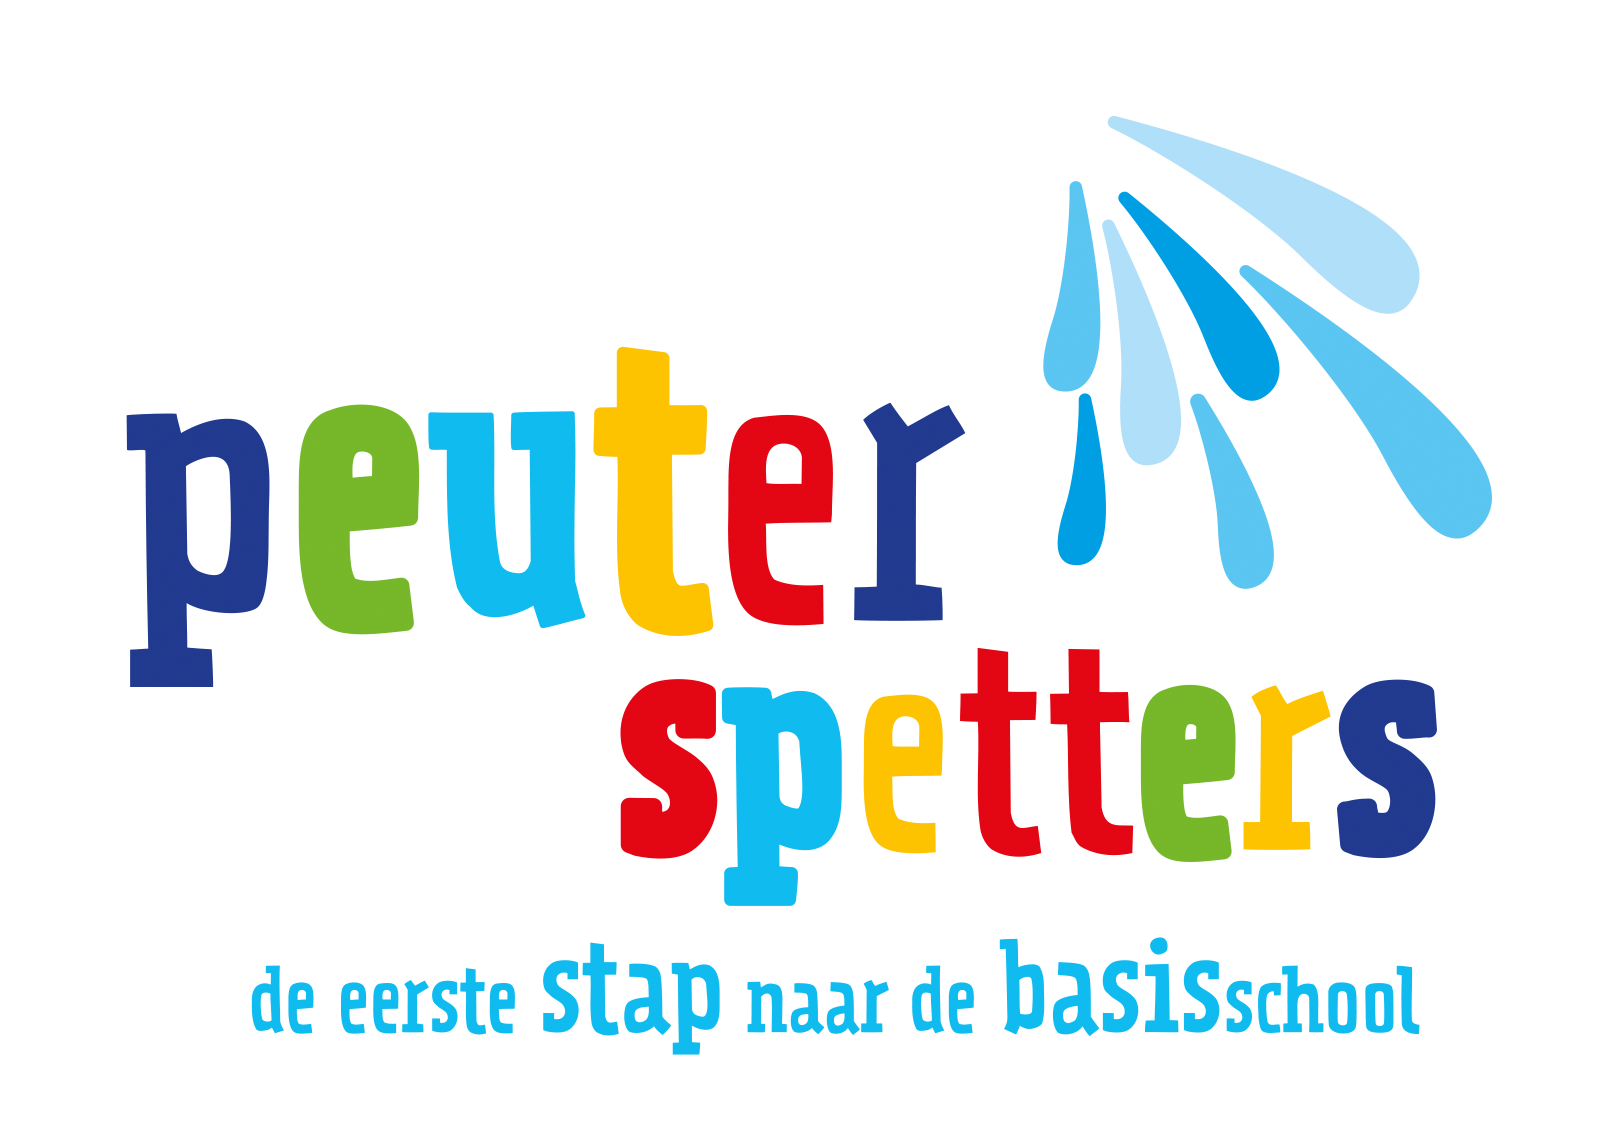 Peuterspetters